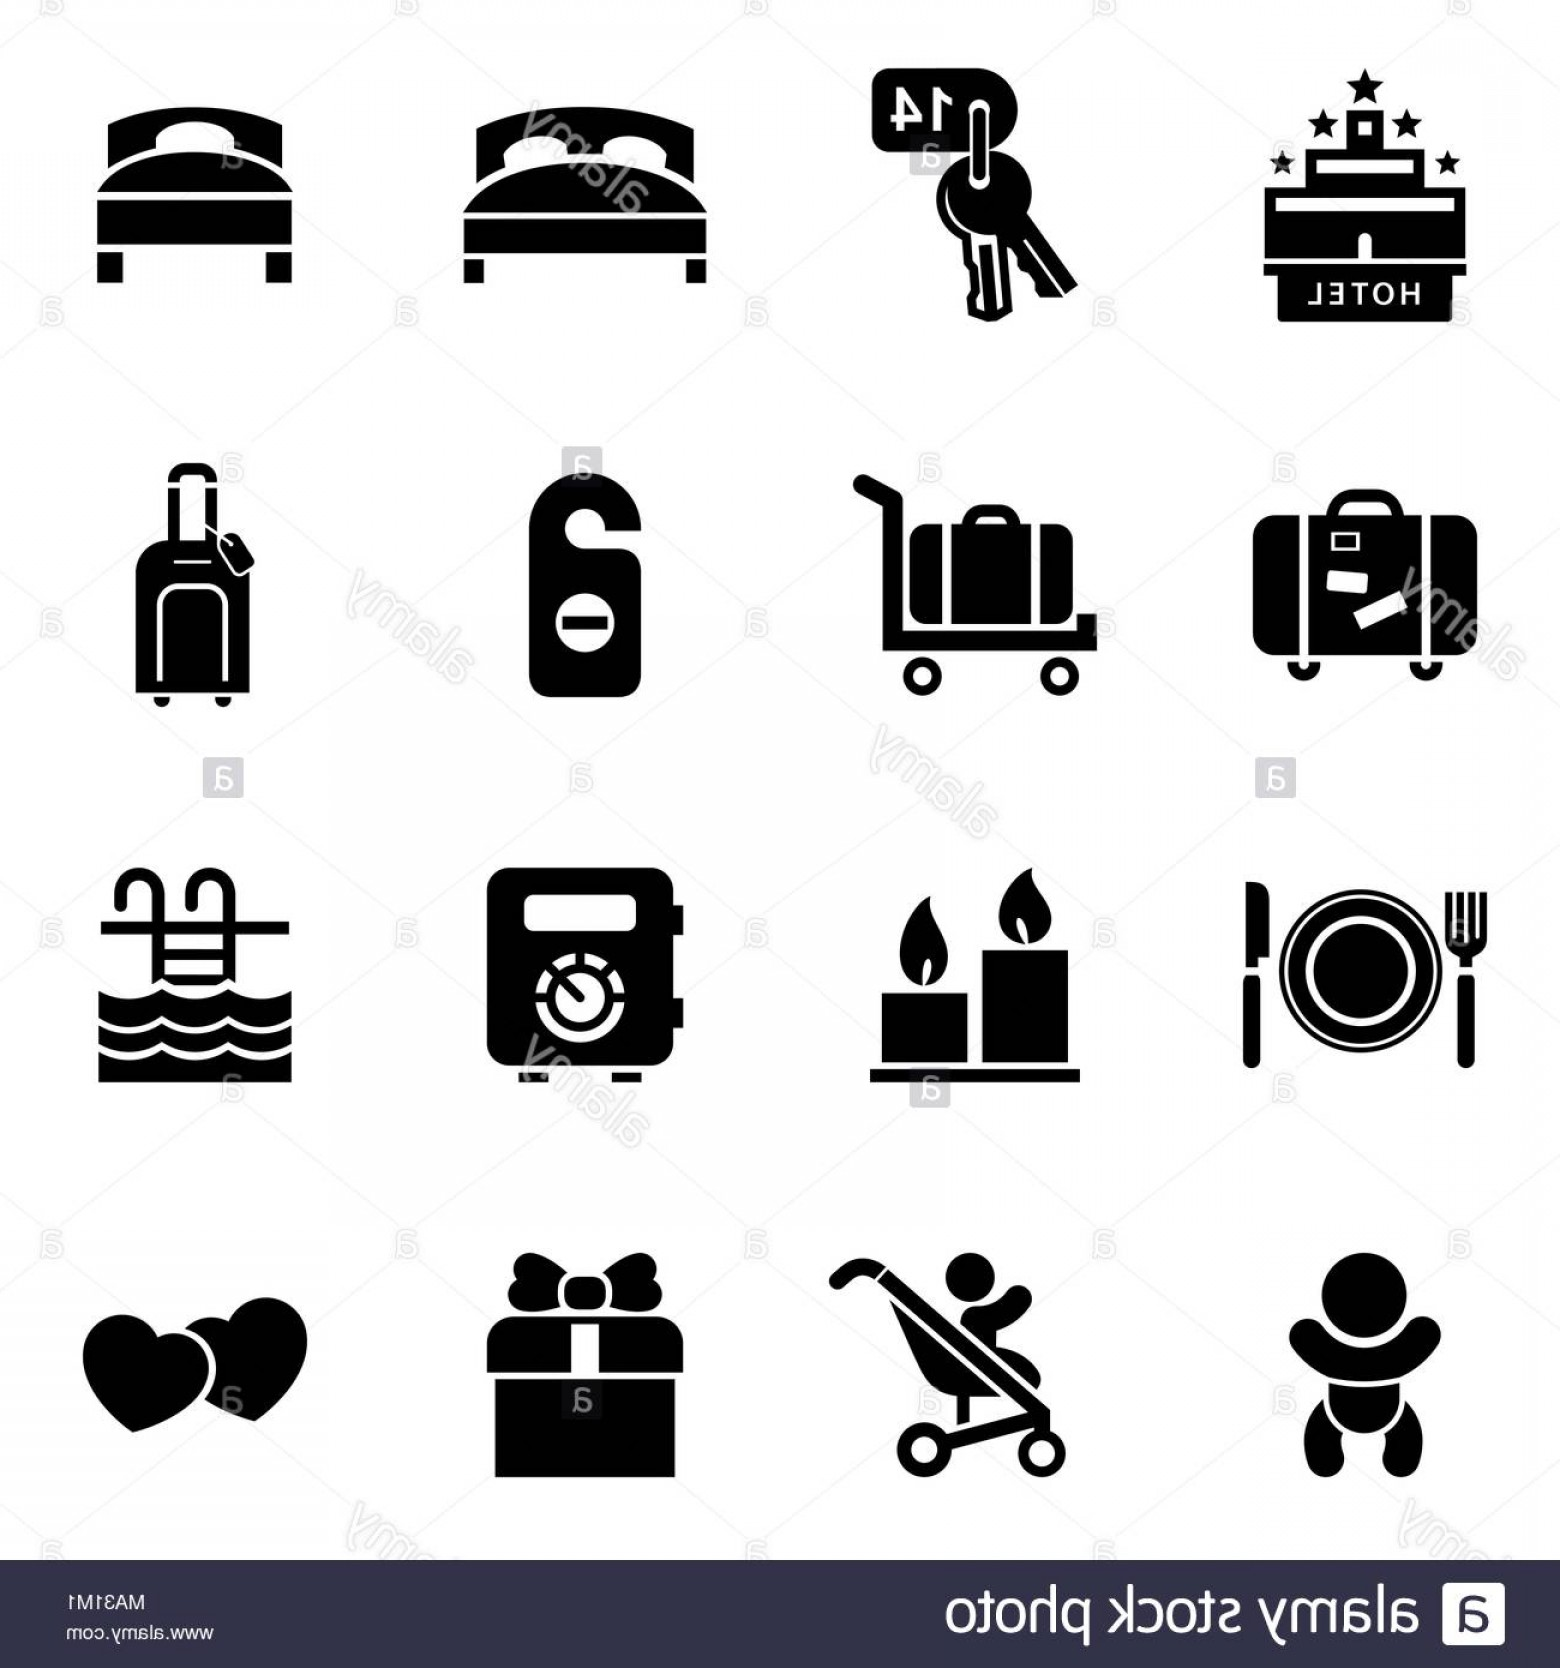 In Icon Stock Vector: Hotel Icon Set Simple Flat Style Vector Illustration Hotel Icons Image